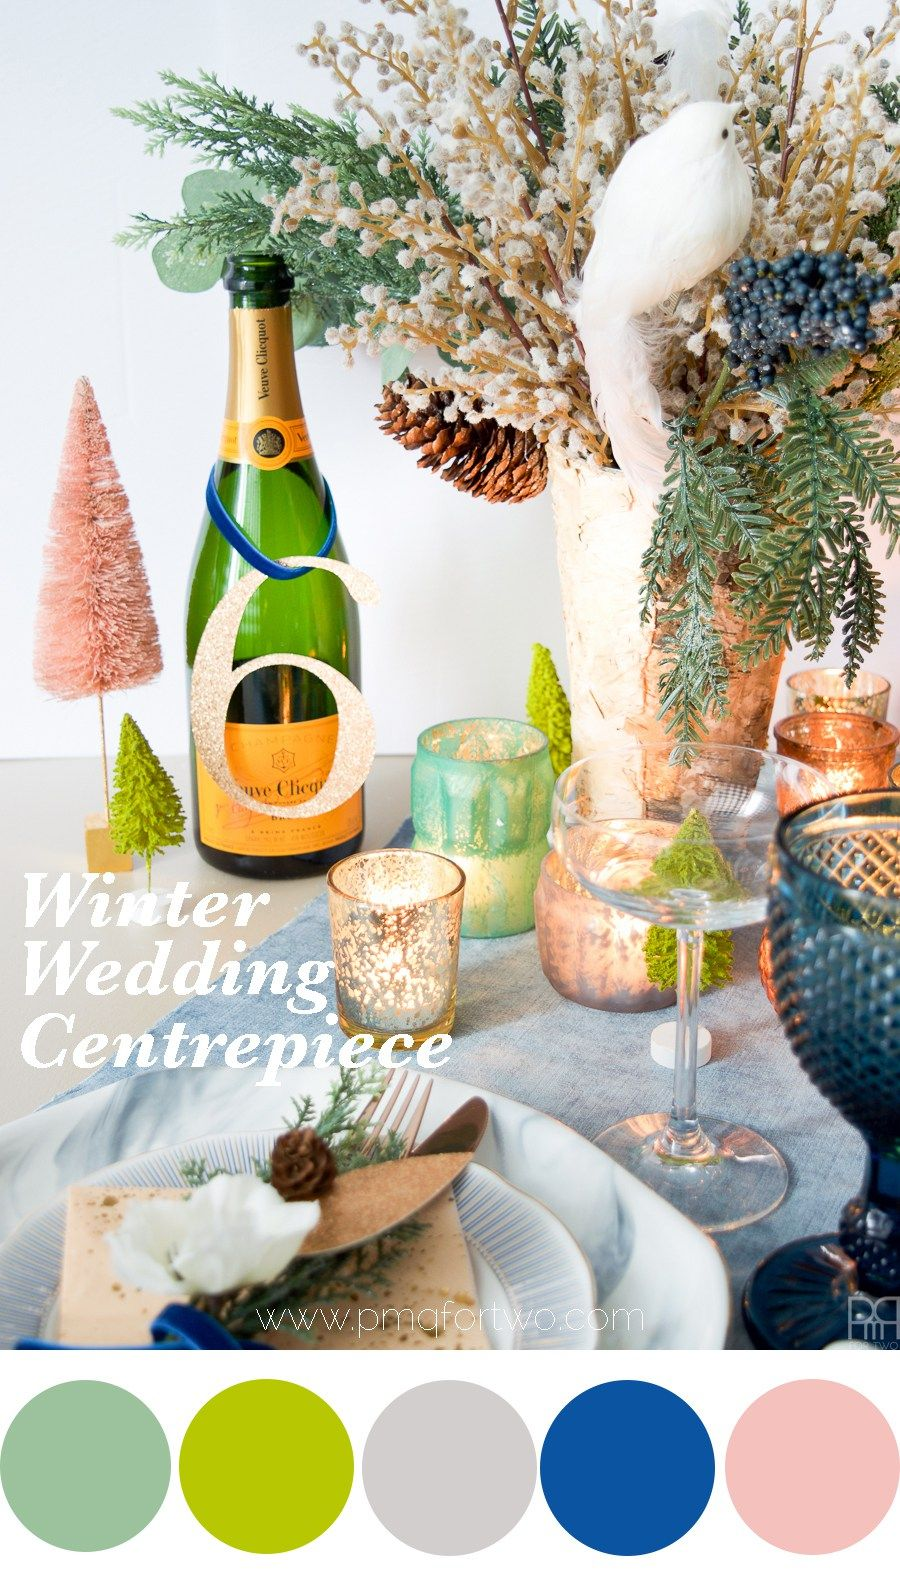 Winter wedding centrepiece tablescapes and table decor diys and